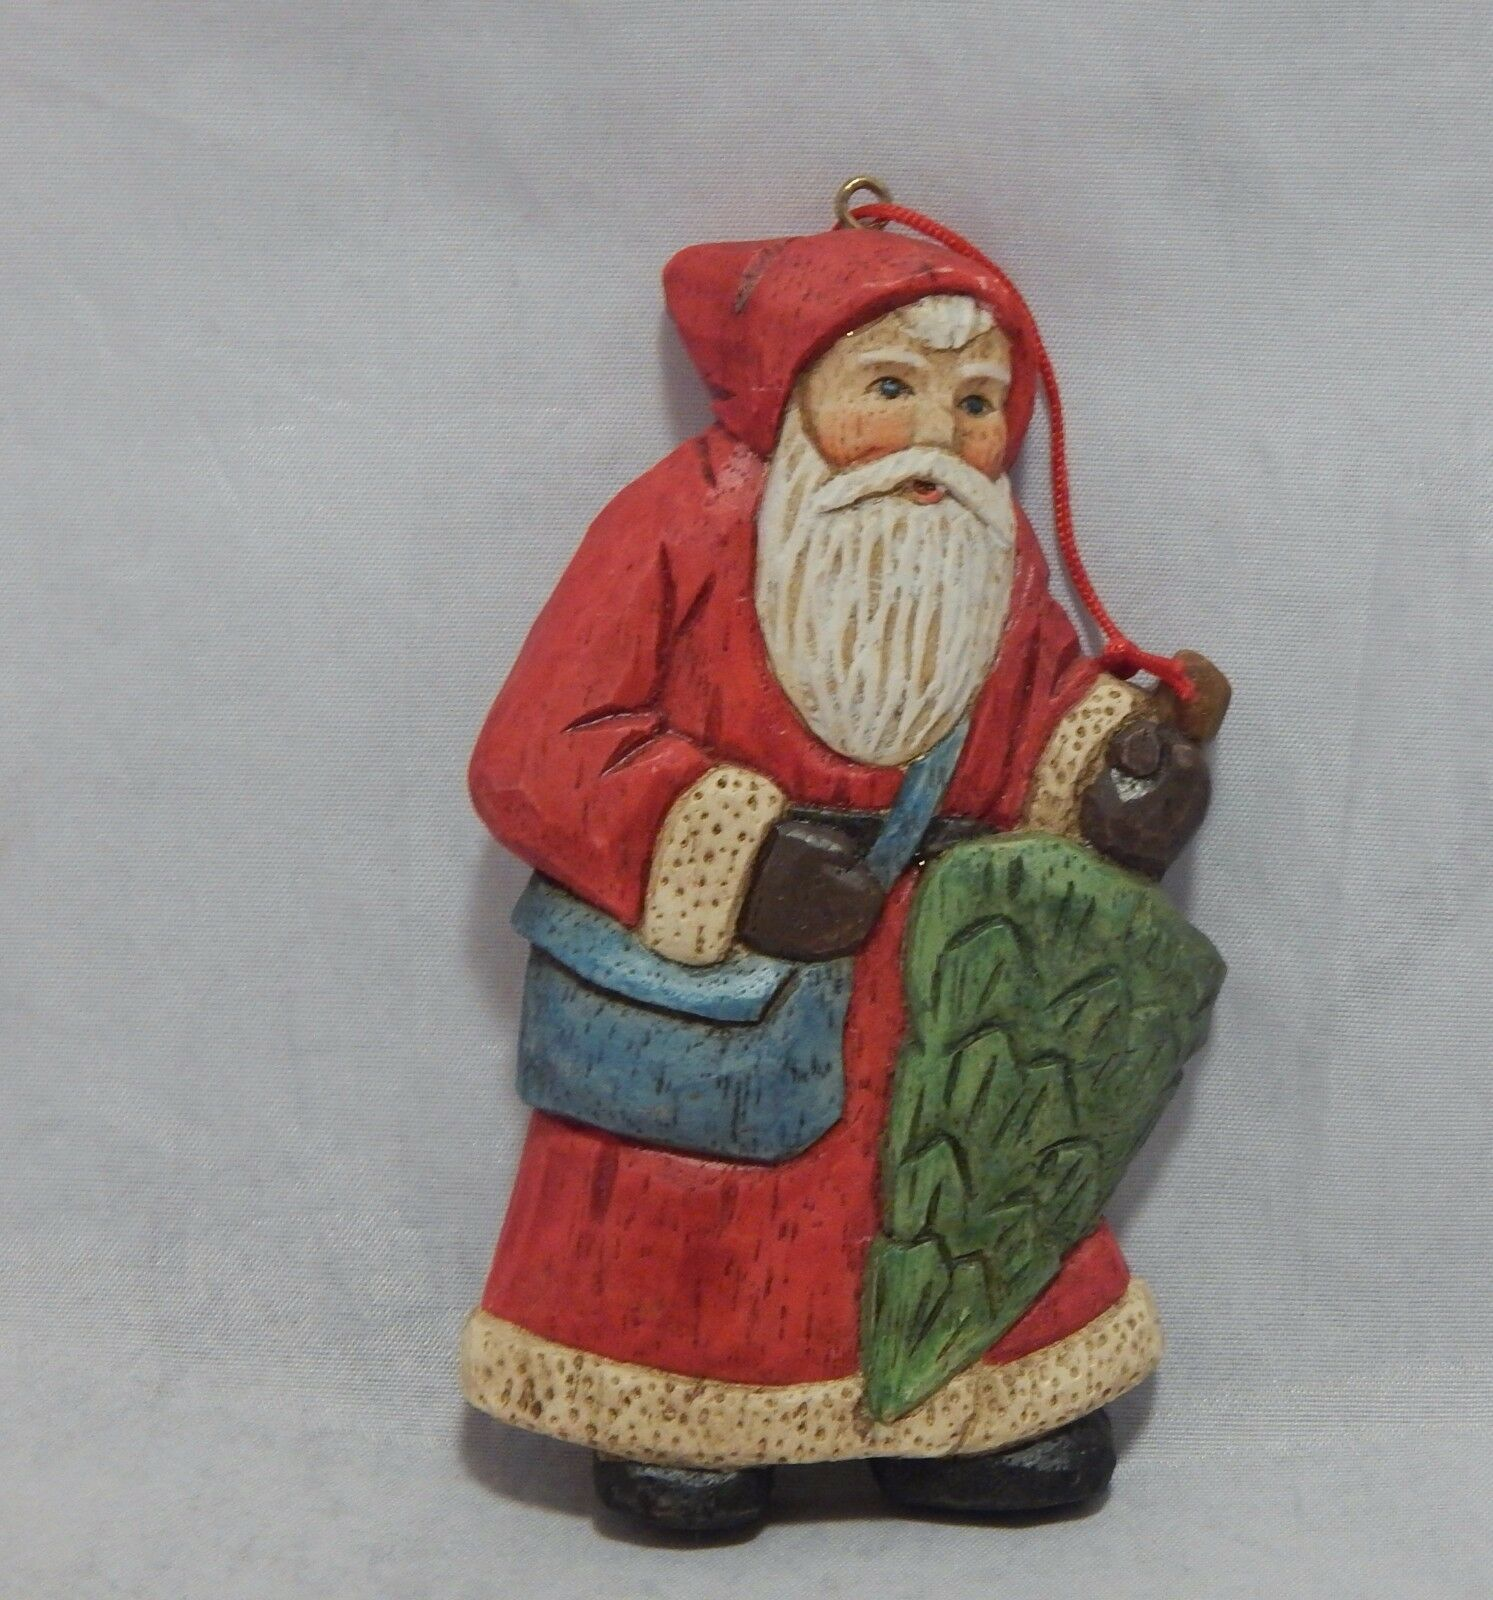 Primary image for Kurt Adler Ornament Santa's World Santa Ornament